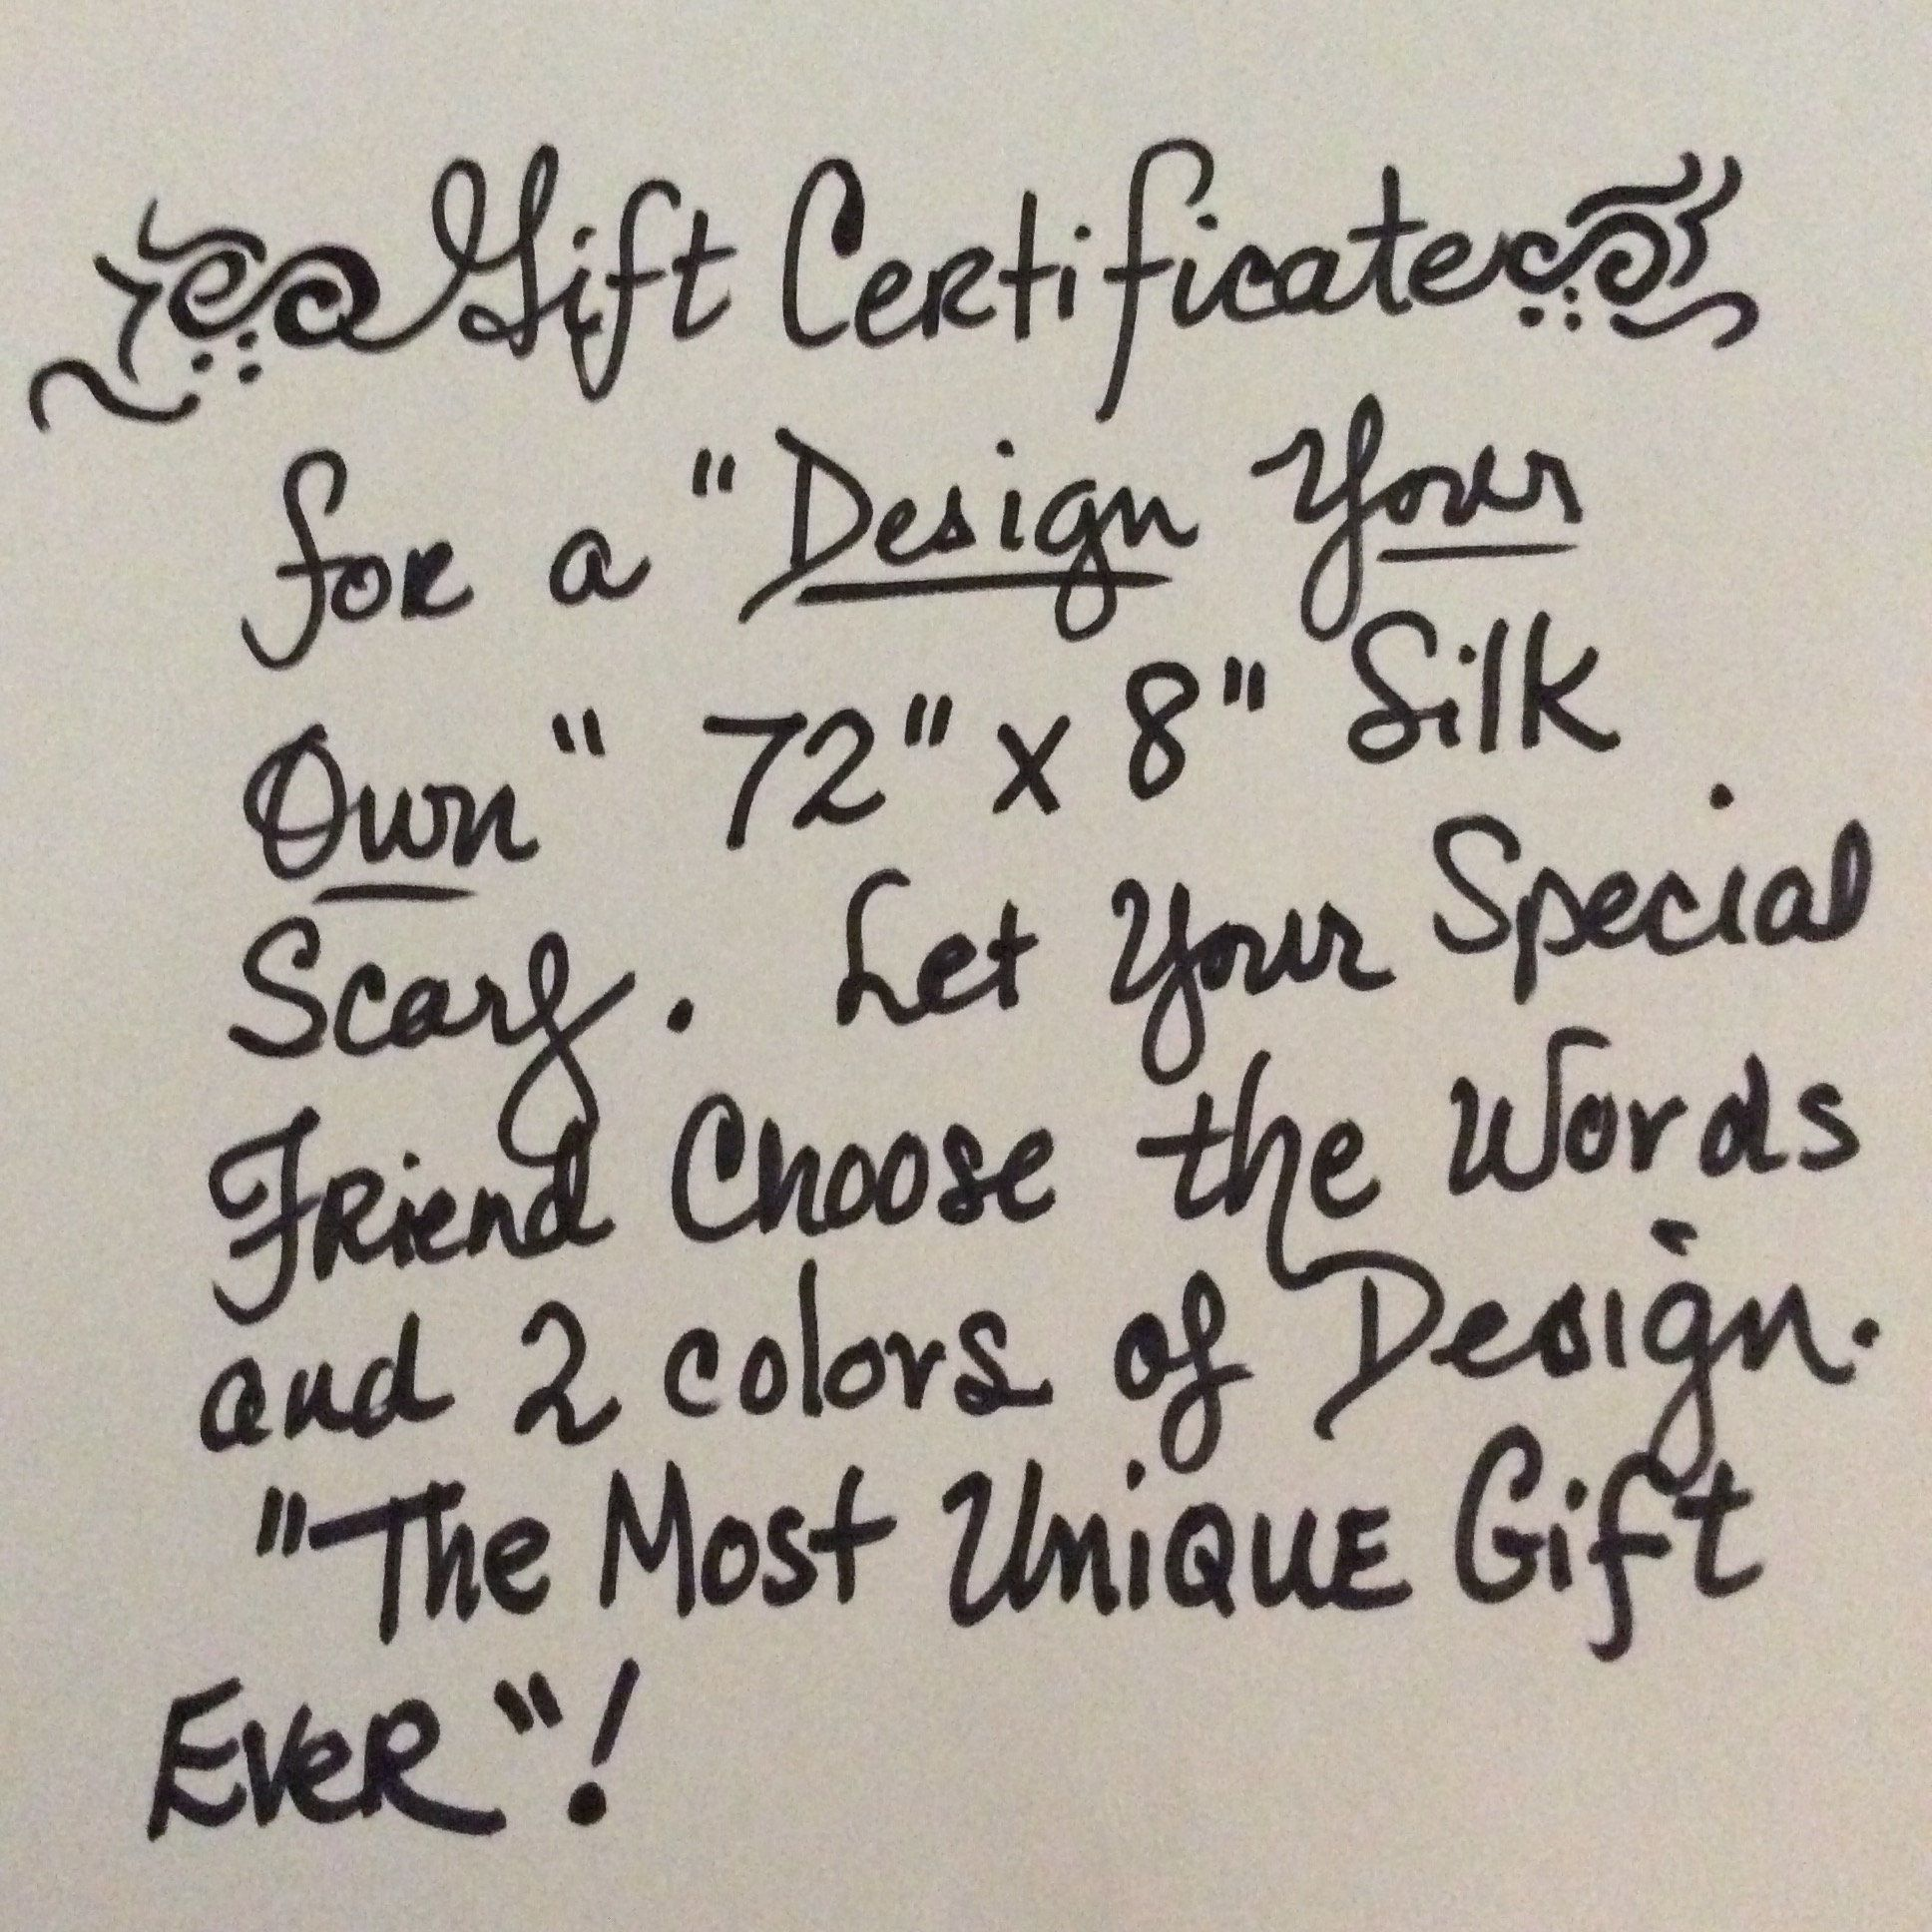 gift certificate for a design your own silk scarf gift